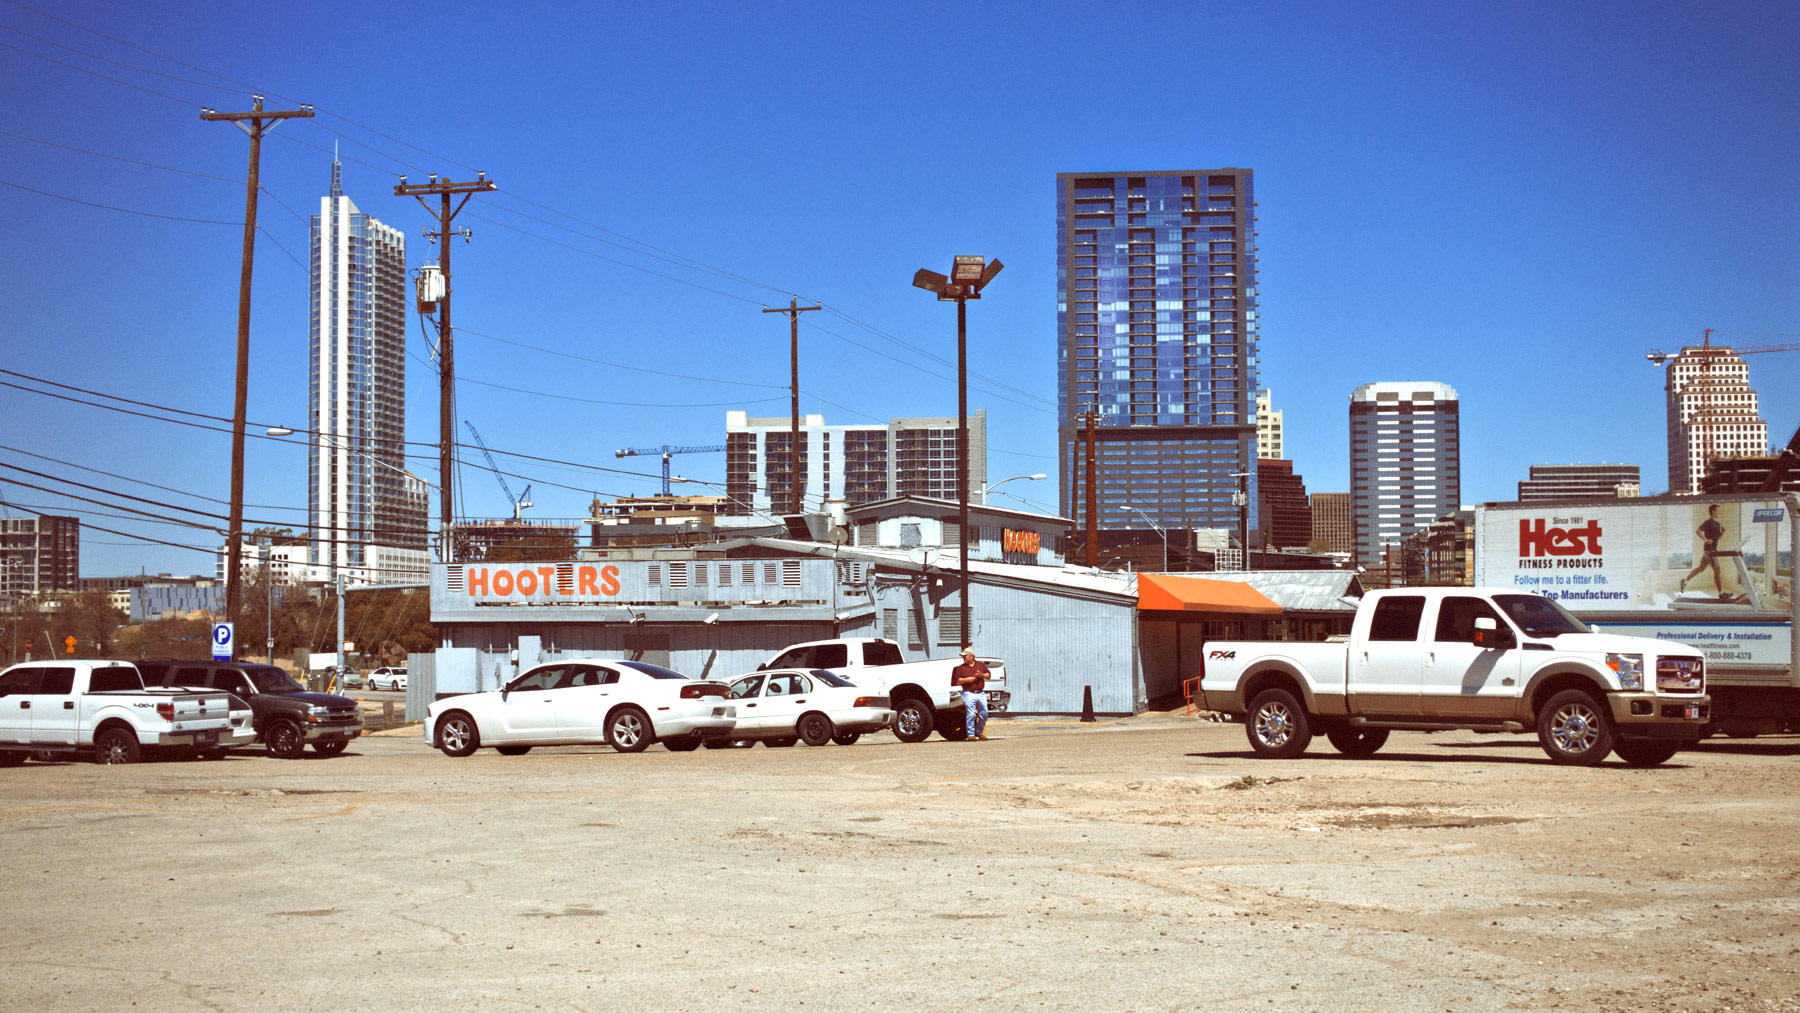 Good Boy Wolf Photographer, filmic landscape, Austin Texas, carpark filled with trucks